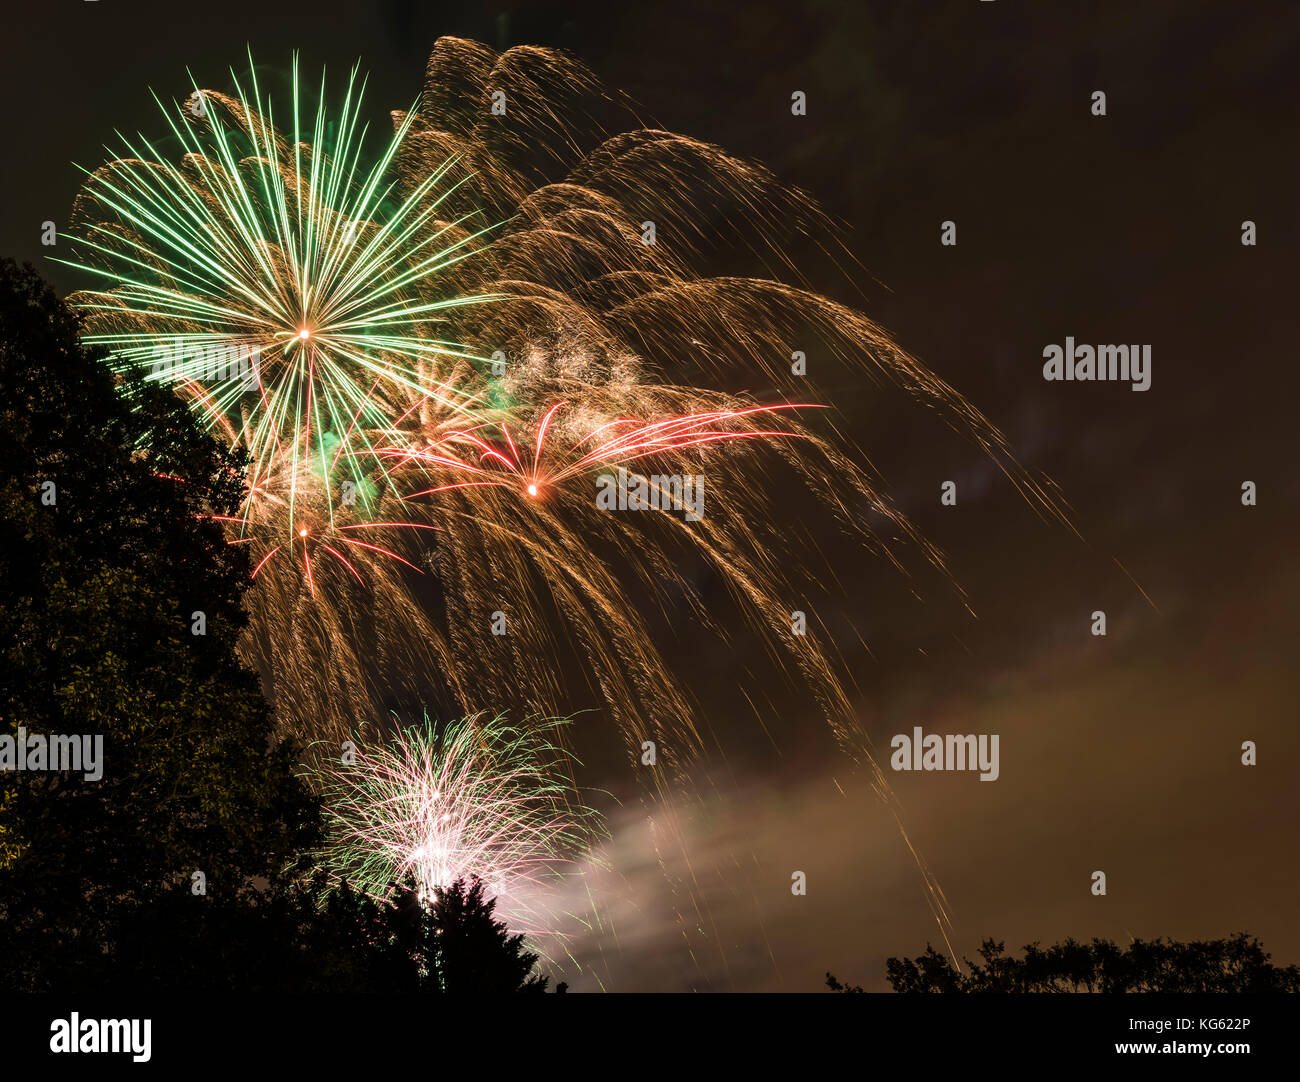 Fireworks and smoke on Bonfire Night, north London, UK - Stock Image